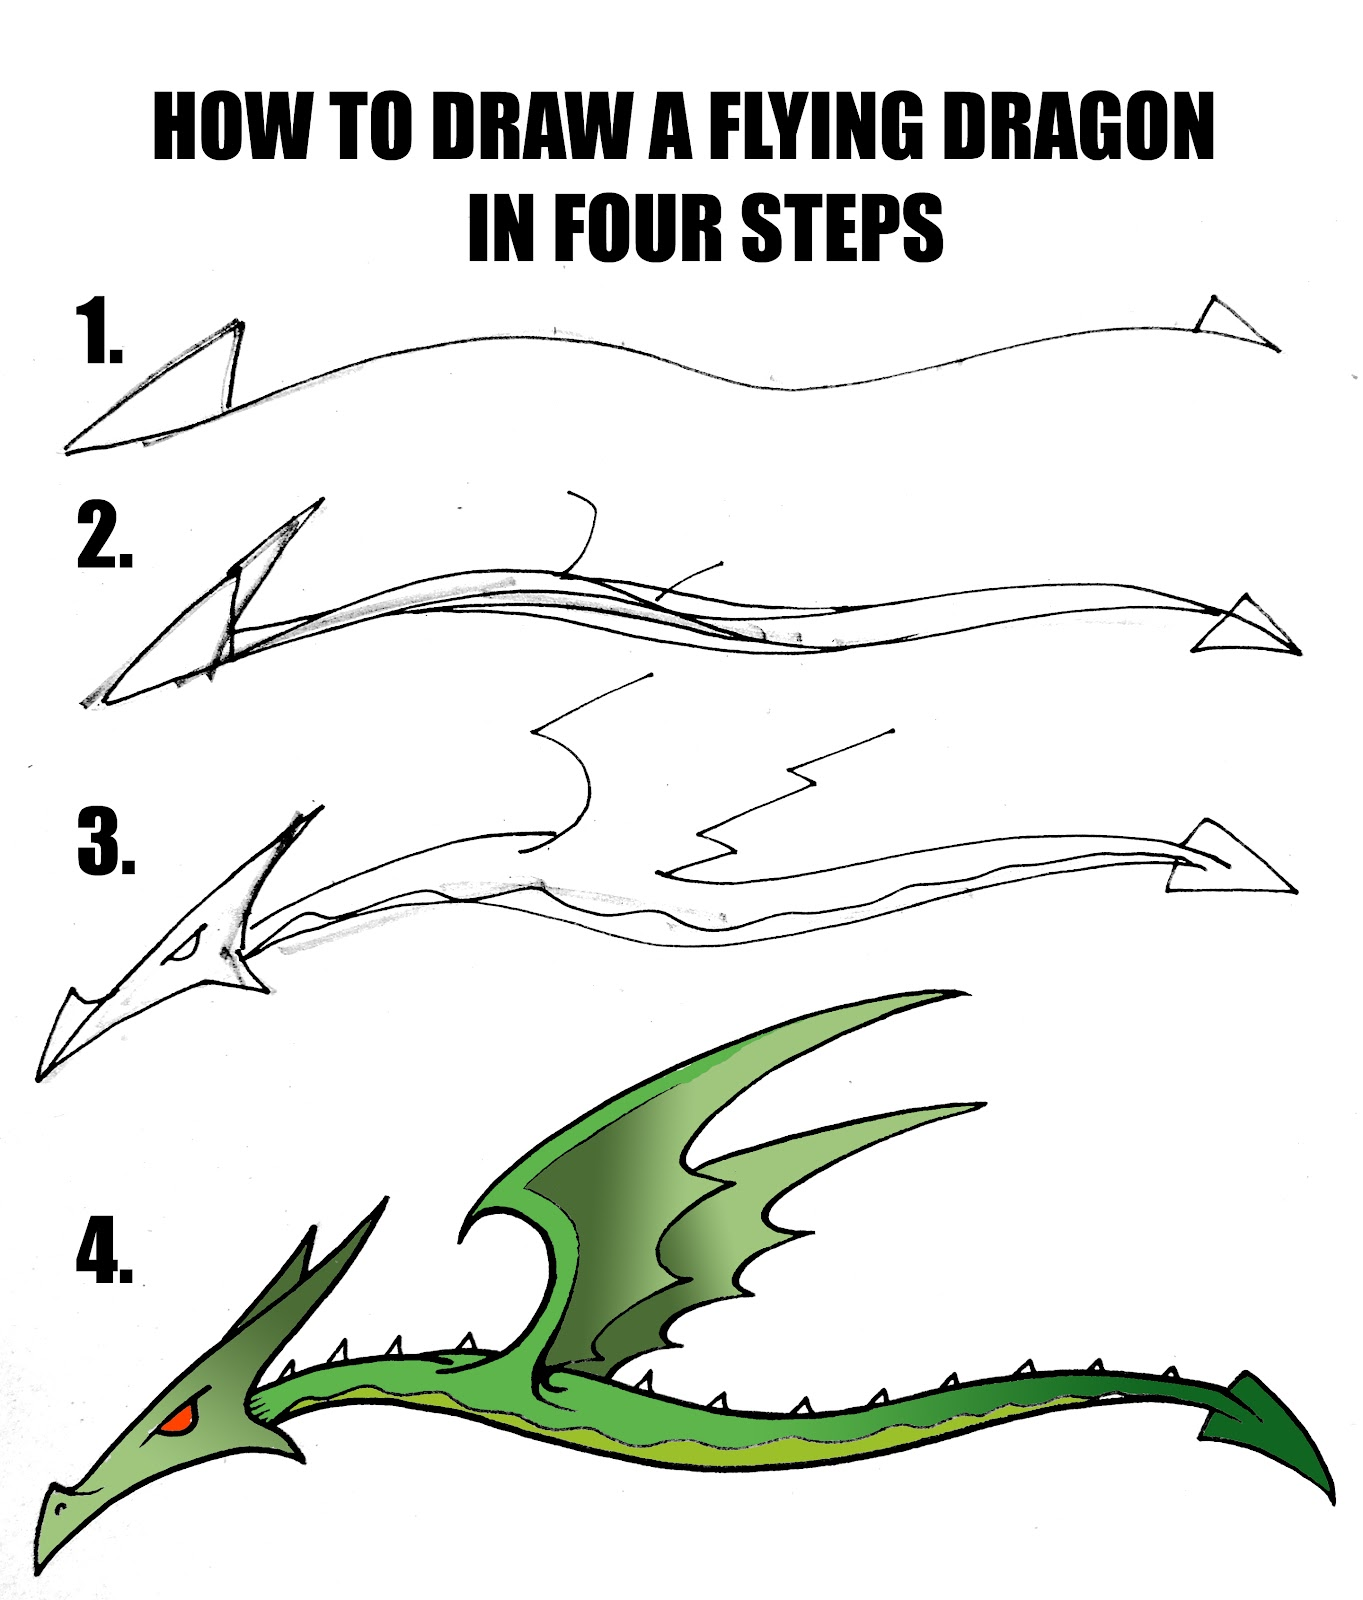 Breathing Flames Drawings Dragon Heads Howtodraw Dragon09 How To Draw A  Gold Dragon Solution For How